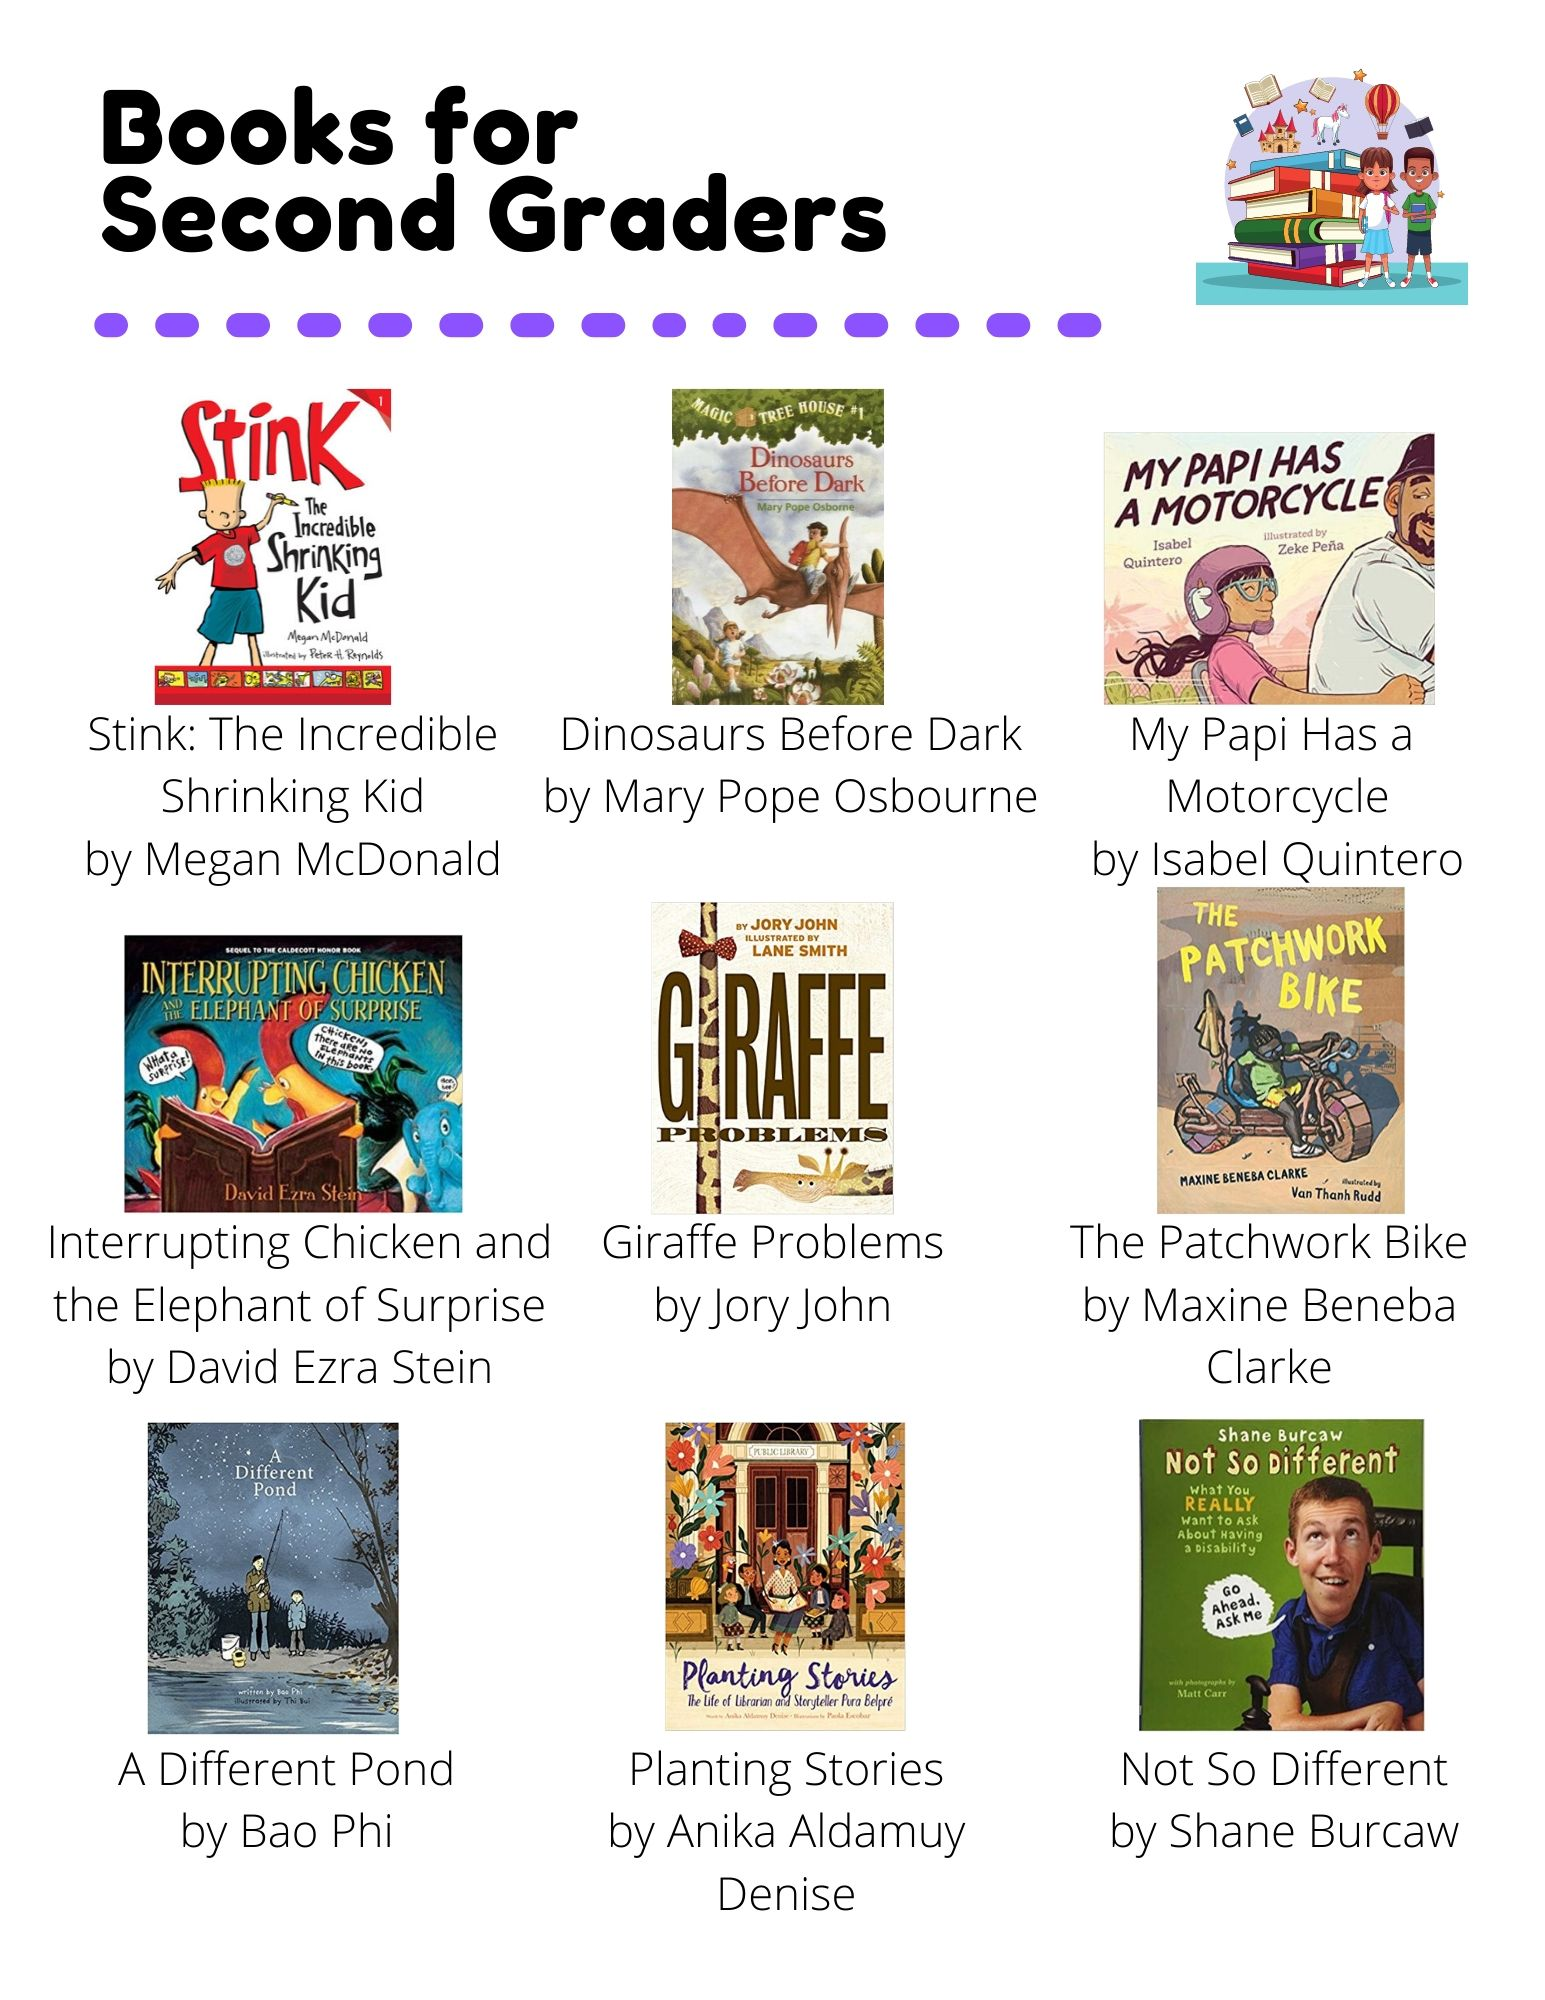 Books for Second Graders: Stink: The Incredible Shrinking Kid by Megan McDonald. Dinosaurs Before Dark by Mary Pope Osbourne. My Papi Has a  Motorcycle by Isabel Quintero. Interrupting Chicken and the Elephant of Surprise by David Ezra Stein. Giraffe Problems by Jory John. The Patchwork Bike by Maxine Beneba Clarke. A Different Pond by Bao Phi. Planting Stories by Anika Aldamuy Denise. Not So Different by Shane Burcaw. Hidden Figures by Margot Lee Shetterly. Meet Yasmin by Saadia Faruqi. The Bad Guys by Aaron Blabey. Rosie Revere and the Raucous Riveters by Andrea Beaty. Narwhal:  Unicorn of the Sea by Ben Clanton. Mac B. Kid Spy by Mac Barnett. Bob by Wendy Mass and Rebecca Stead. Each Kindness by Jacqueline Woodson. Get Ready for Second Grade, Amber Brown by Paula Danziger. Katie in the Kitchen by Fran Manushkin. Miss Daisy is Crazy! by Dan Gutman. This is How We Do It by Matt Lamothe.